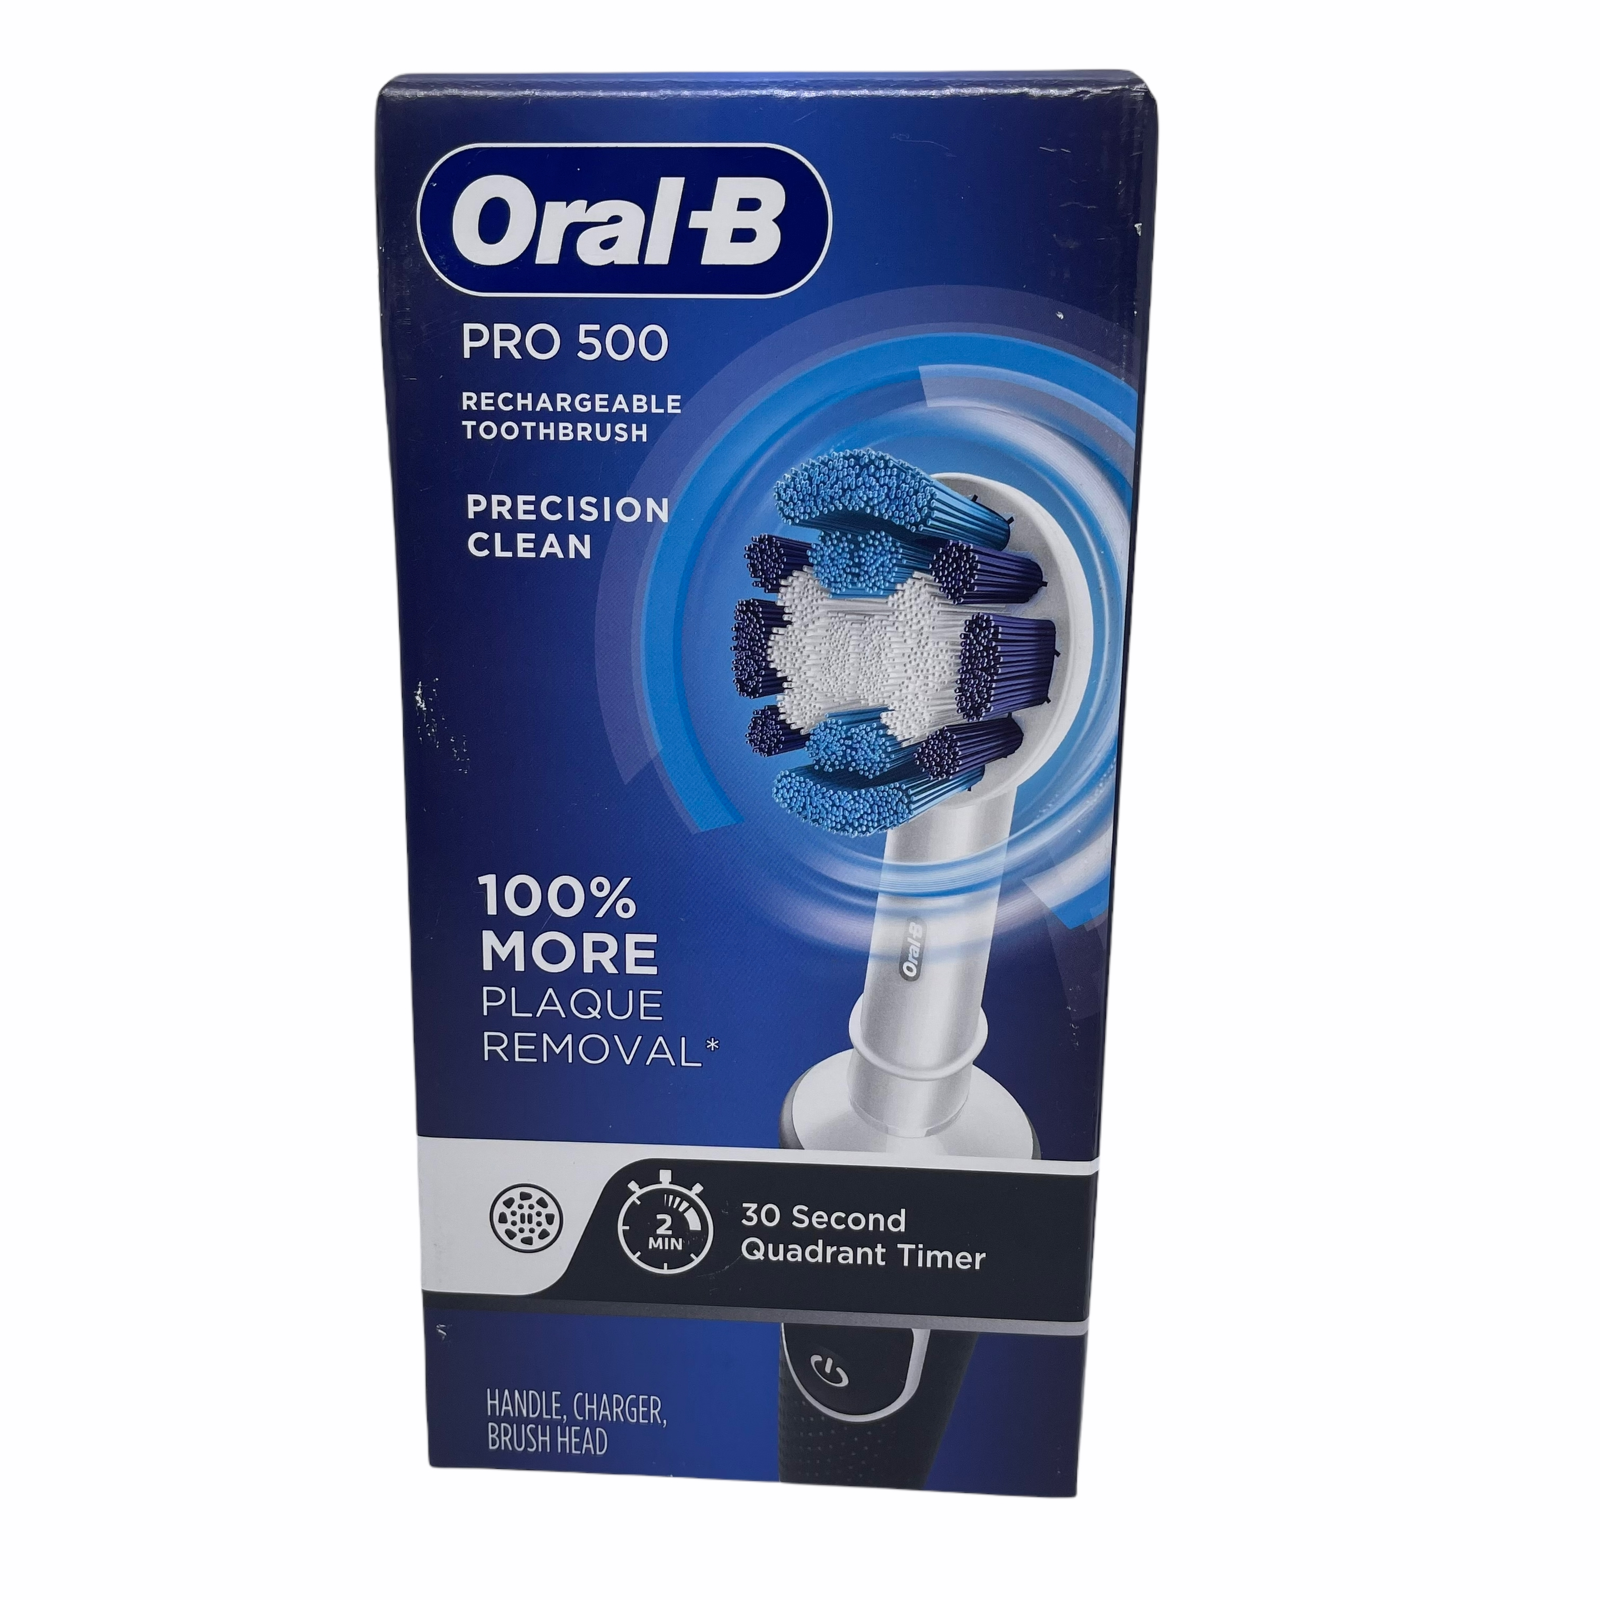 Oral-B Pro 500 Precision Clean Electric Rechargeable Toothbr